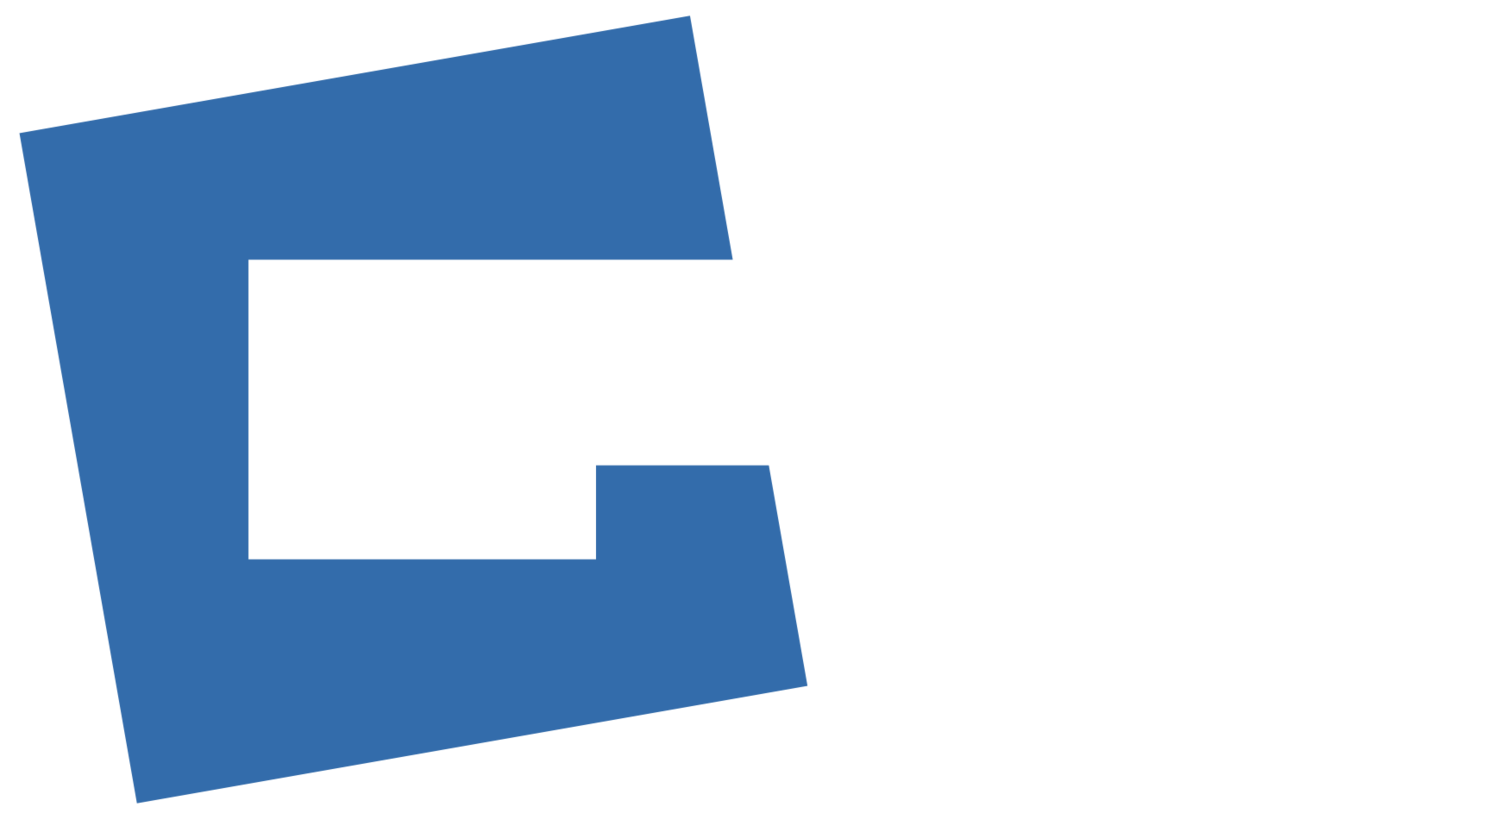 Grace Church of Chapel Hill